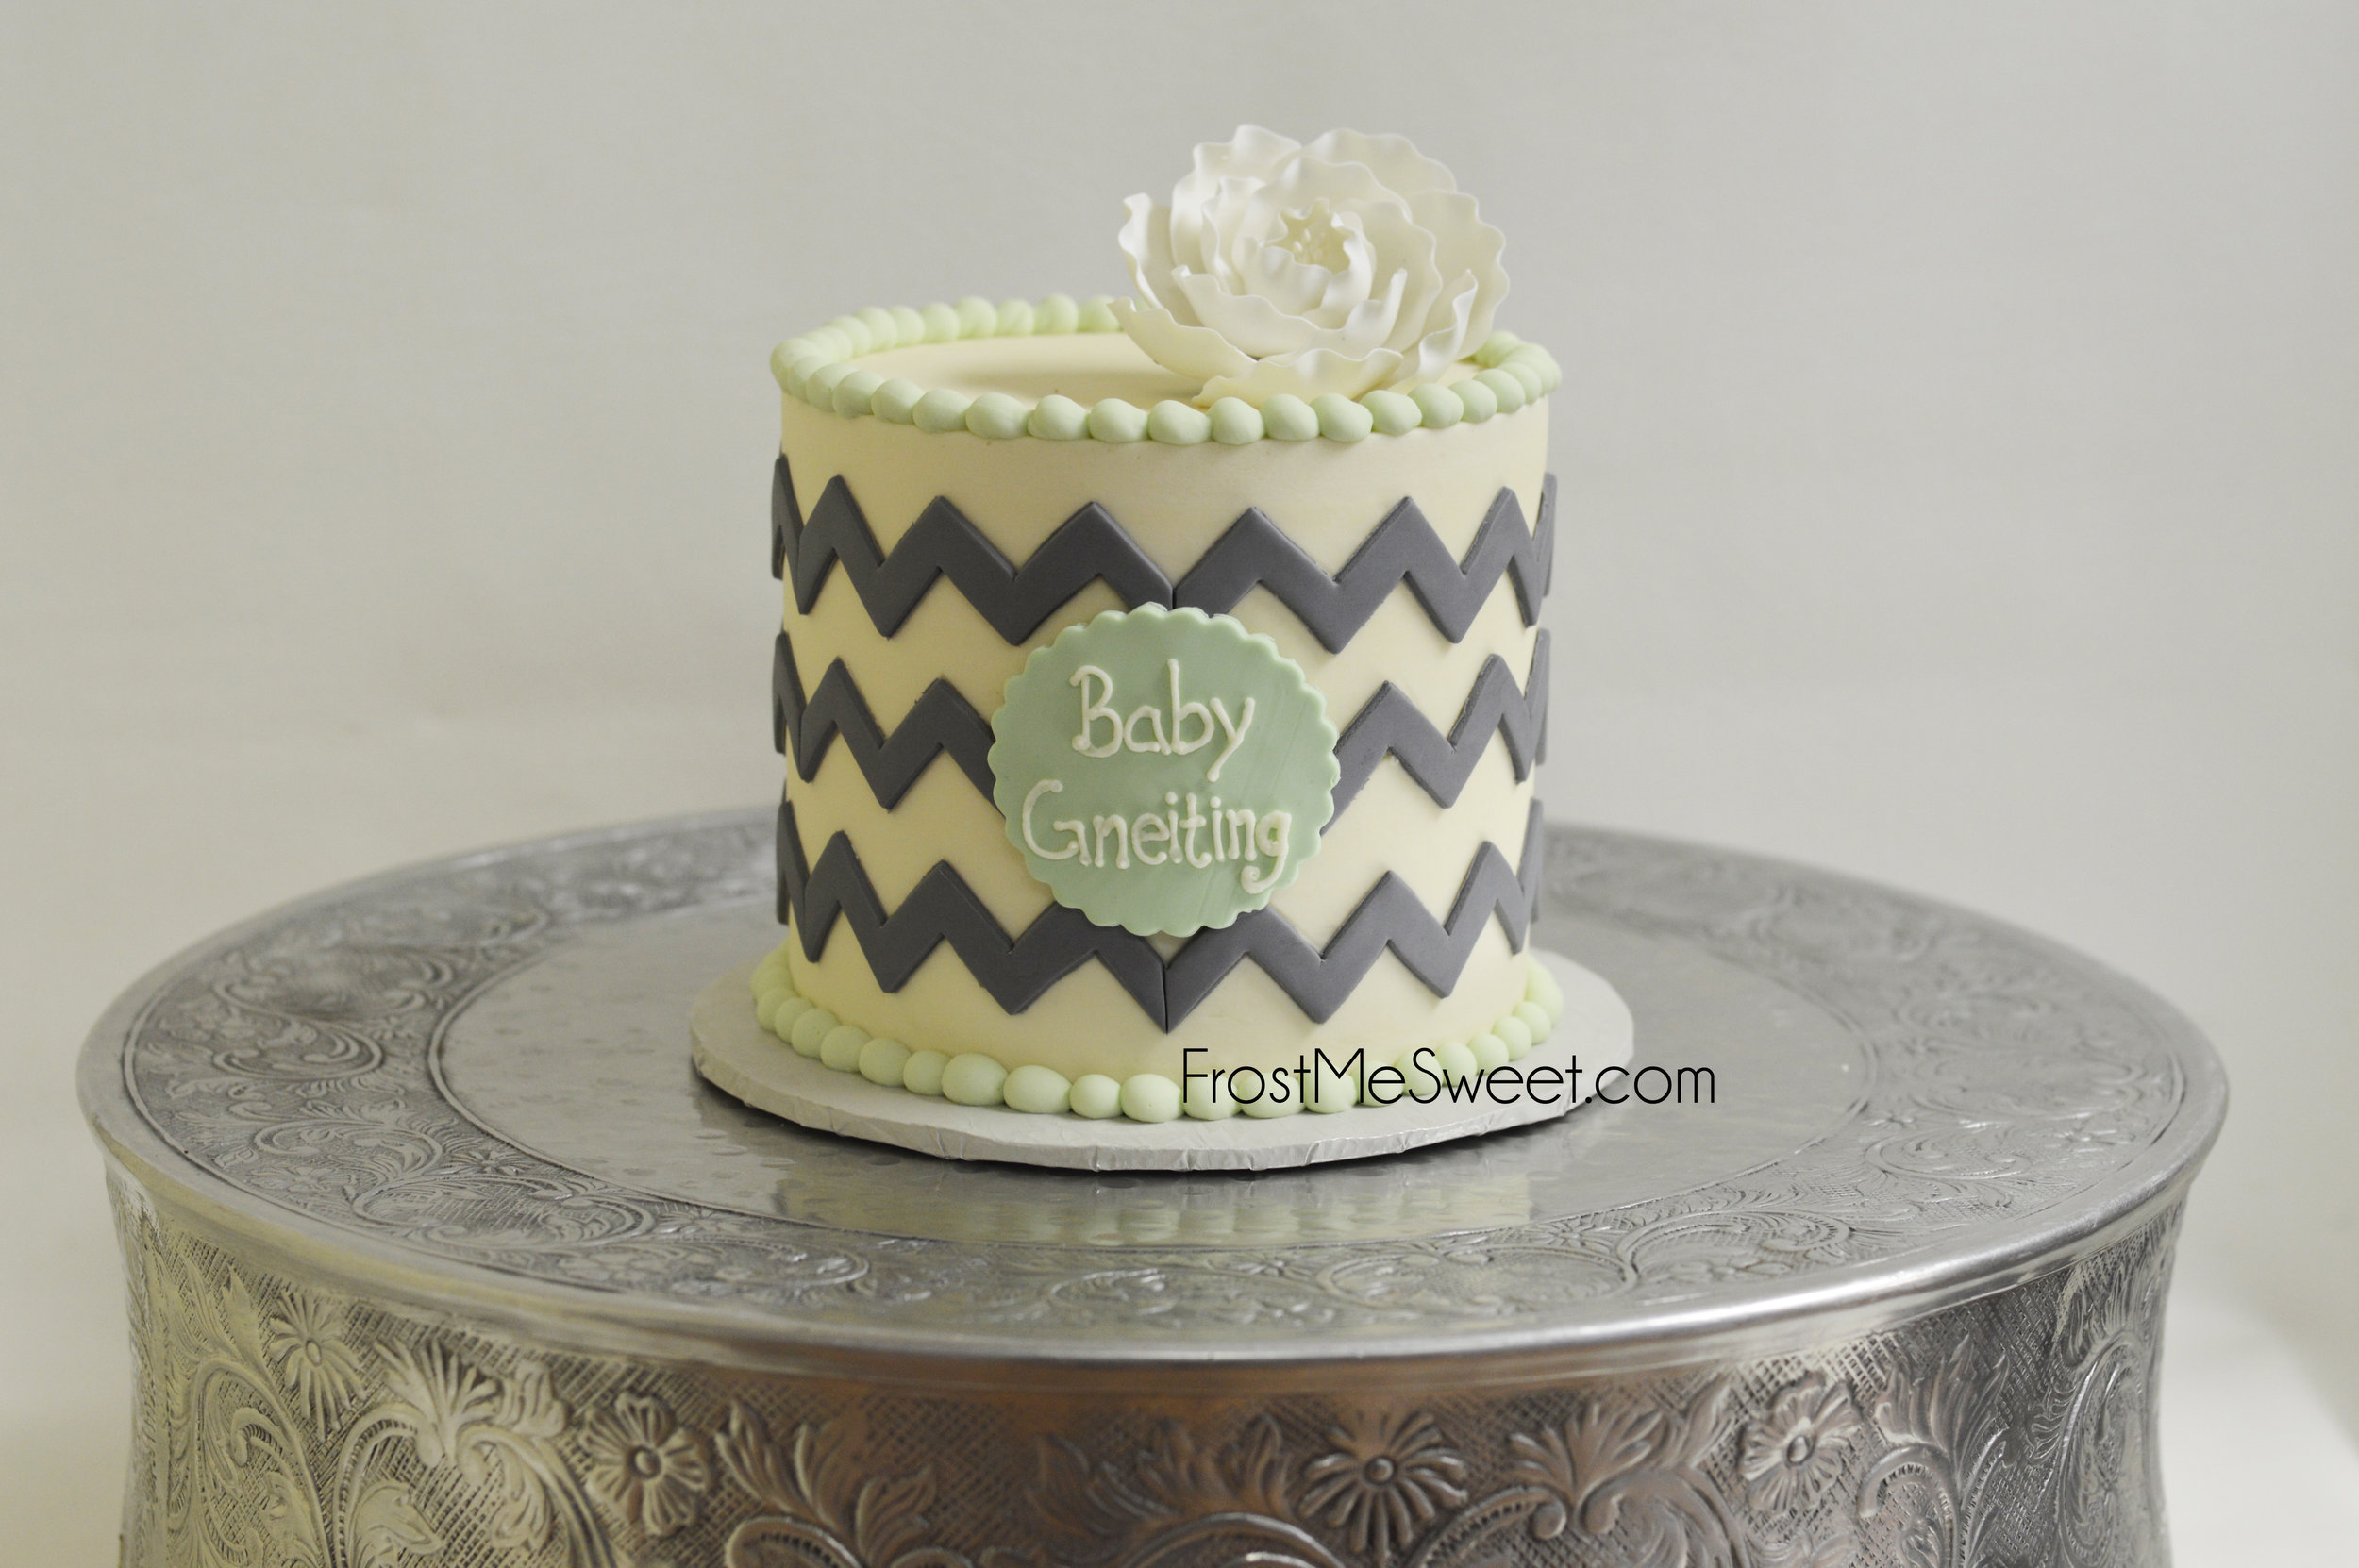 f300f648598a mint and grey chevron baby shower cake 2.jpg